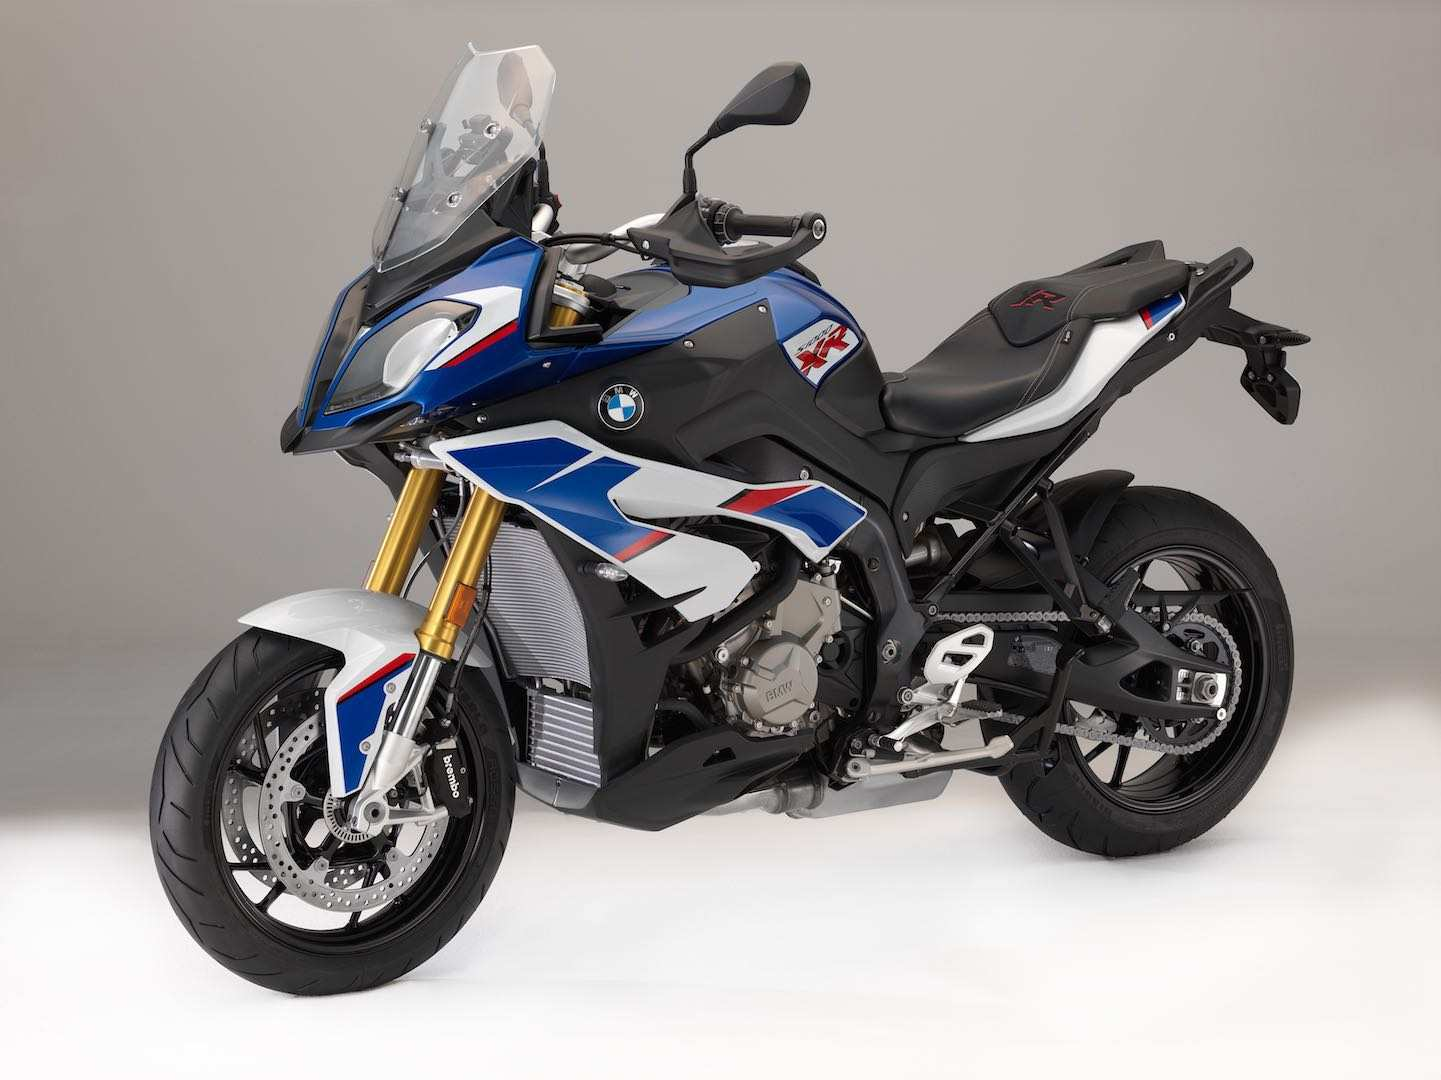 80 Concept of Best Bmw S1000Xr 2019 Release Date Price And Review Pricing with Best Bmw S1000Xr 2019 Release Date Price And Review